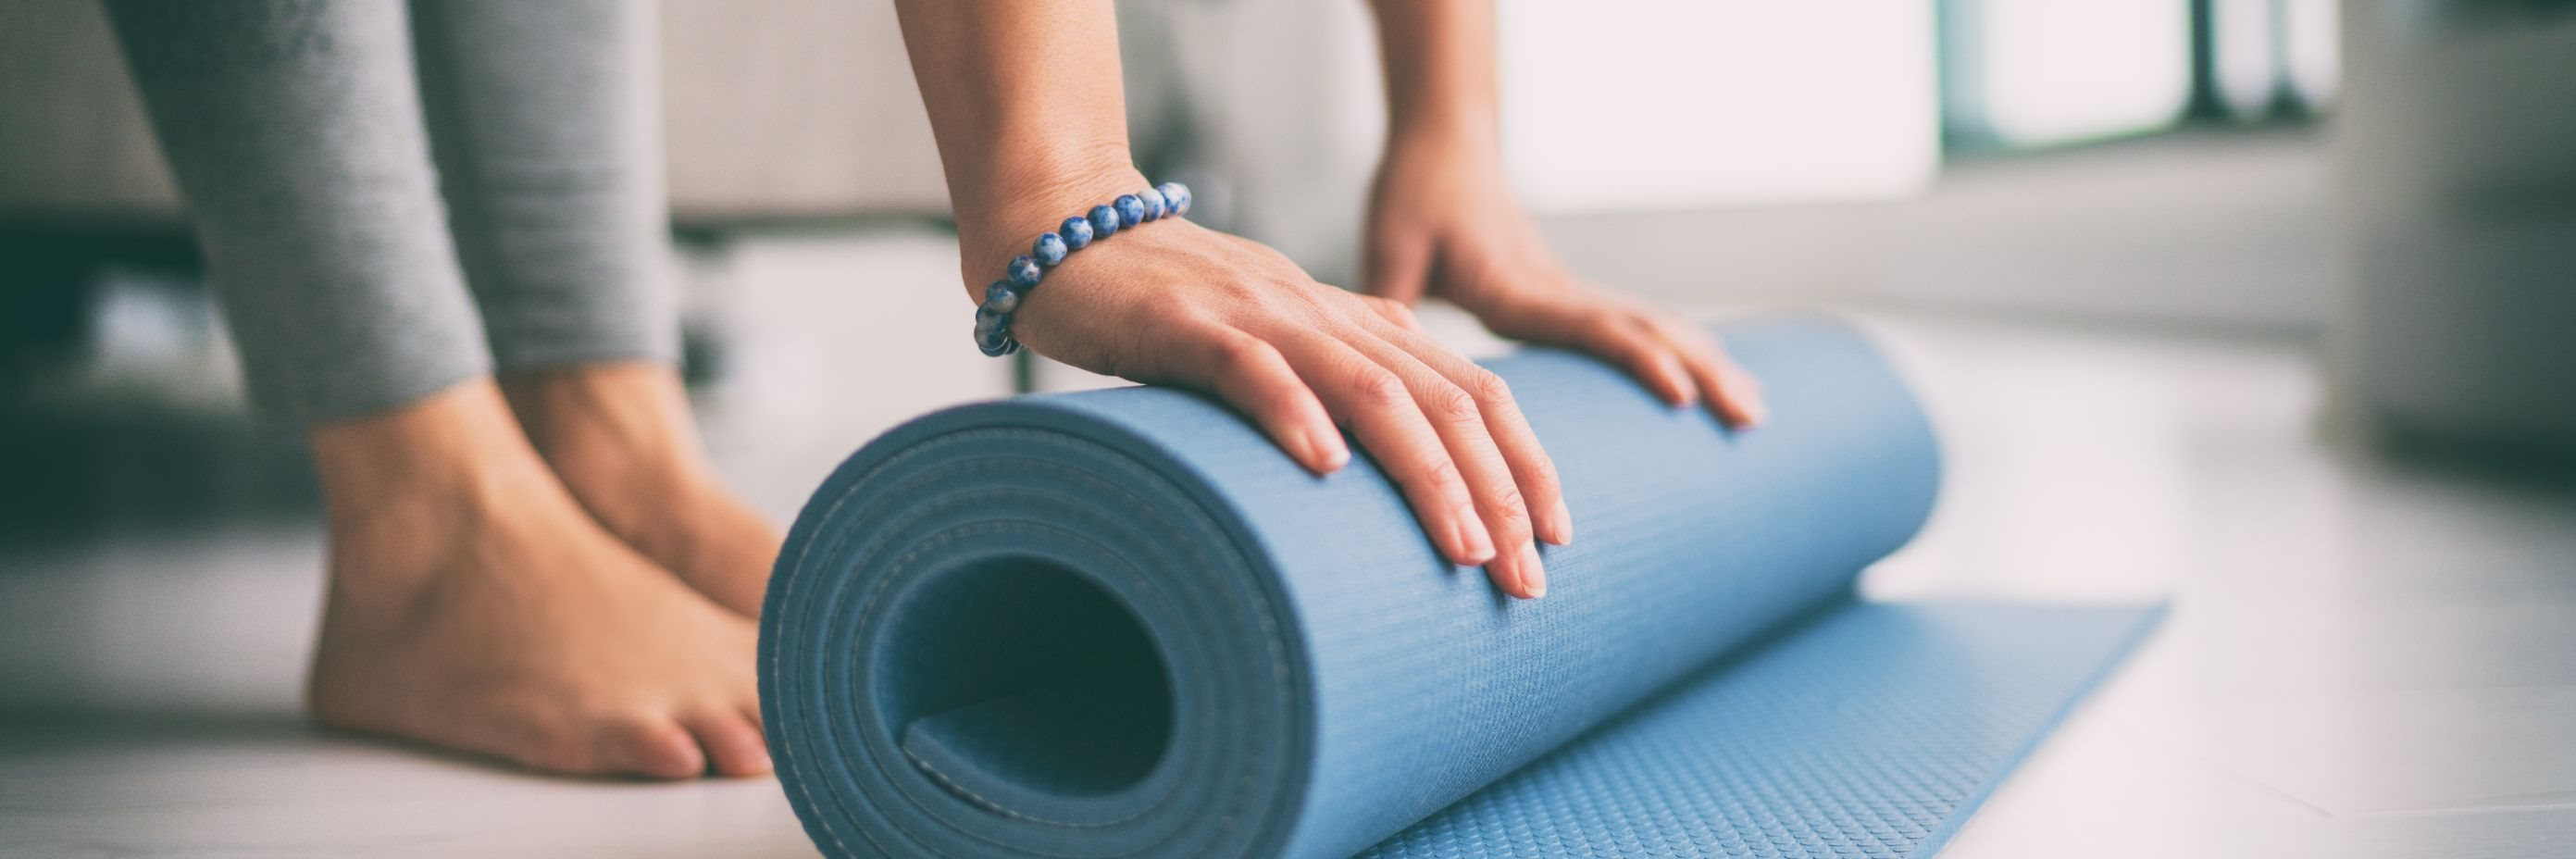 banner lifestyle image of female rolling a yoga mat up